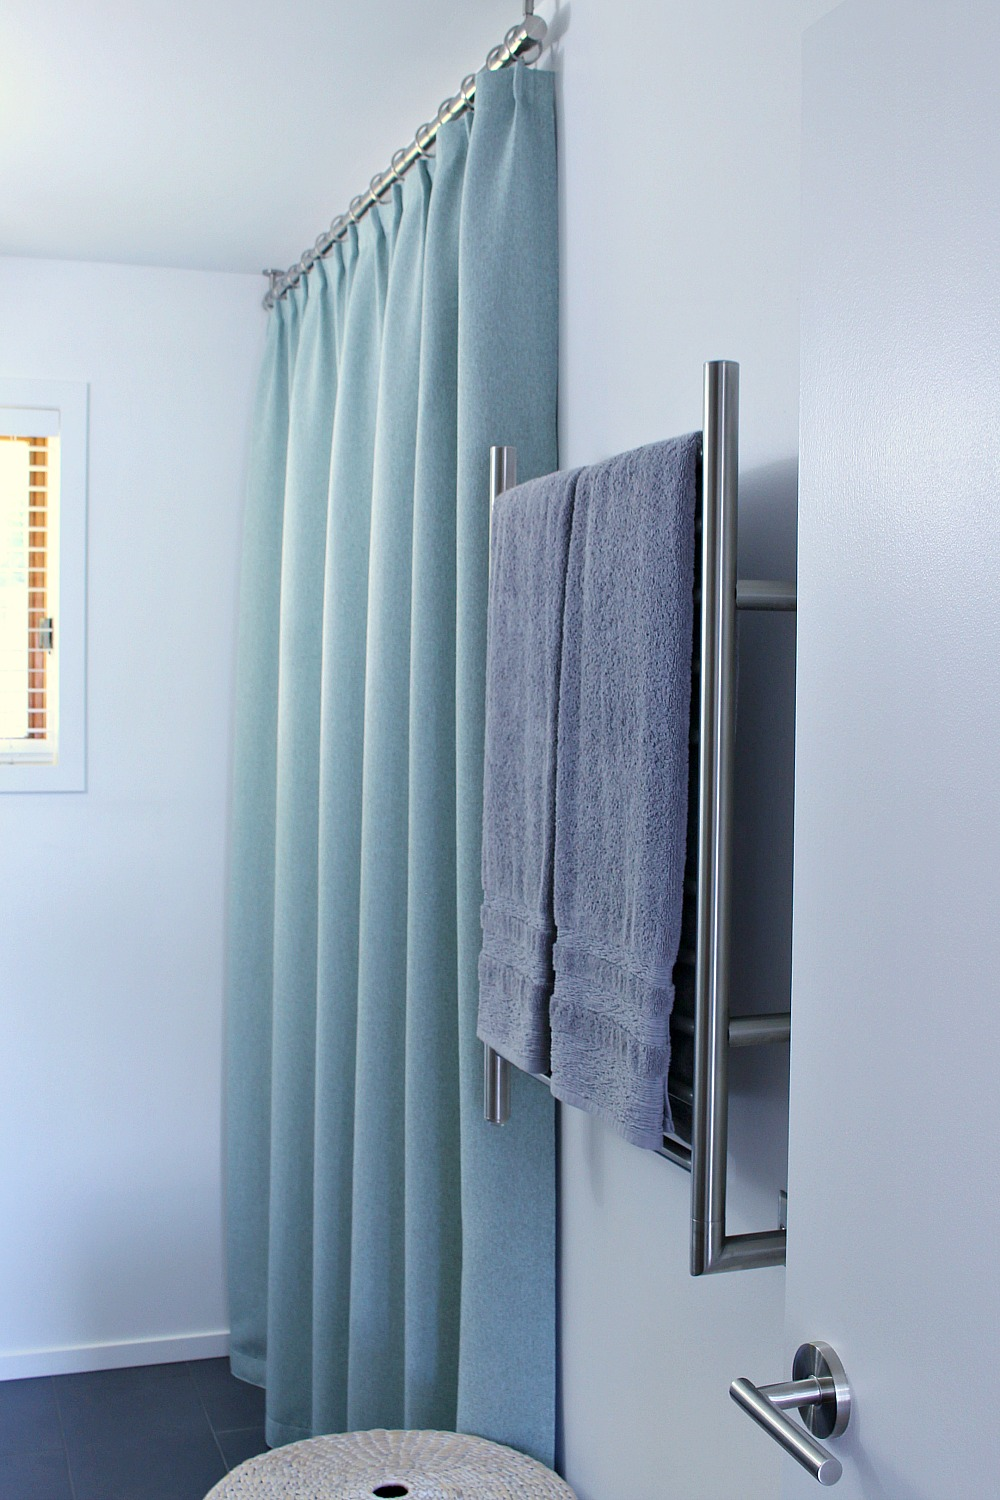 Ceiling Mounted Shower Curtain Rod in Modern Bathroom Reno | www.danslelakehouse.com